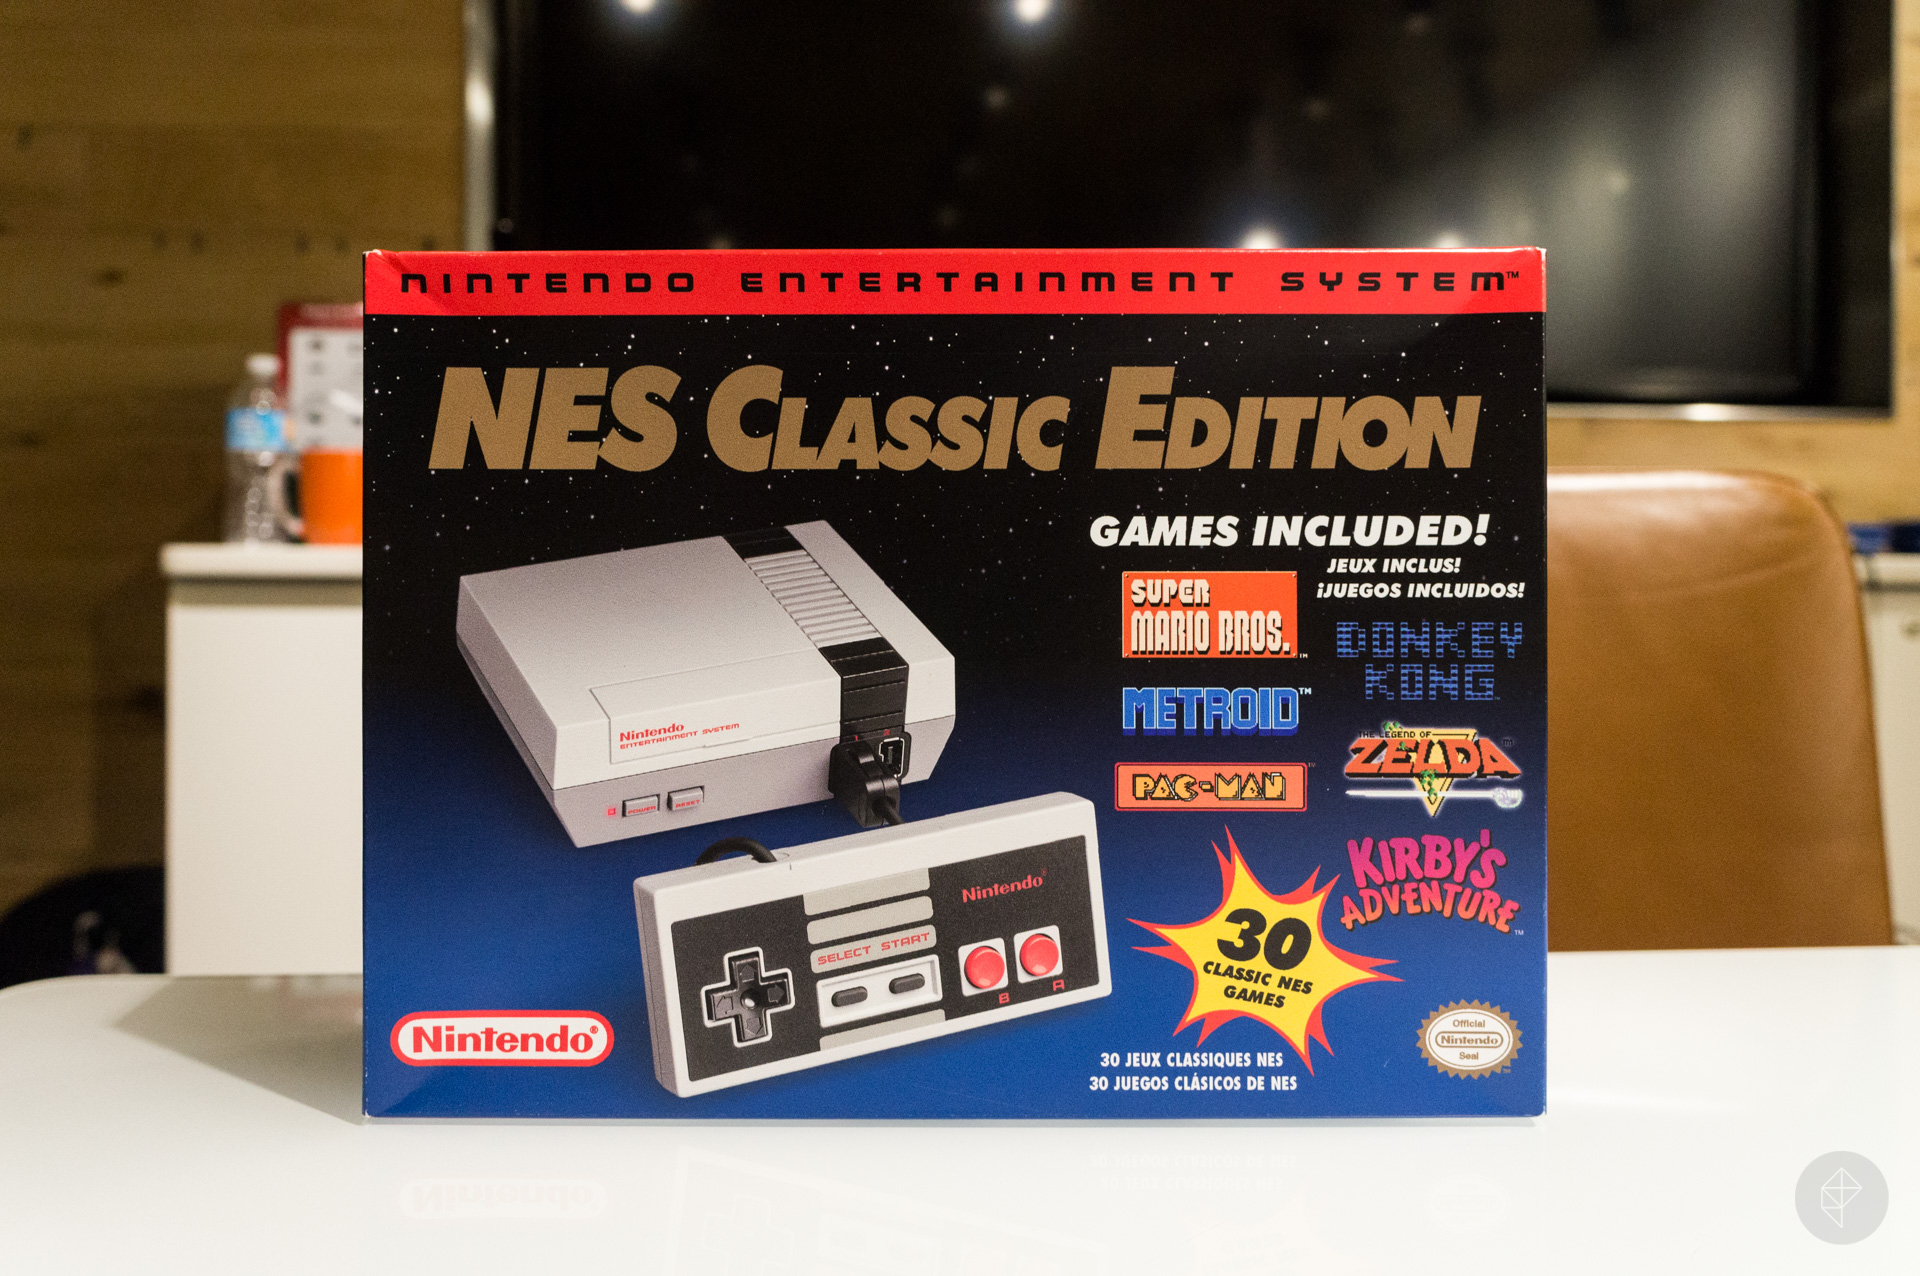 Nintendo bringing back NES Classic Edition in 2018